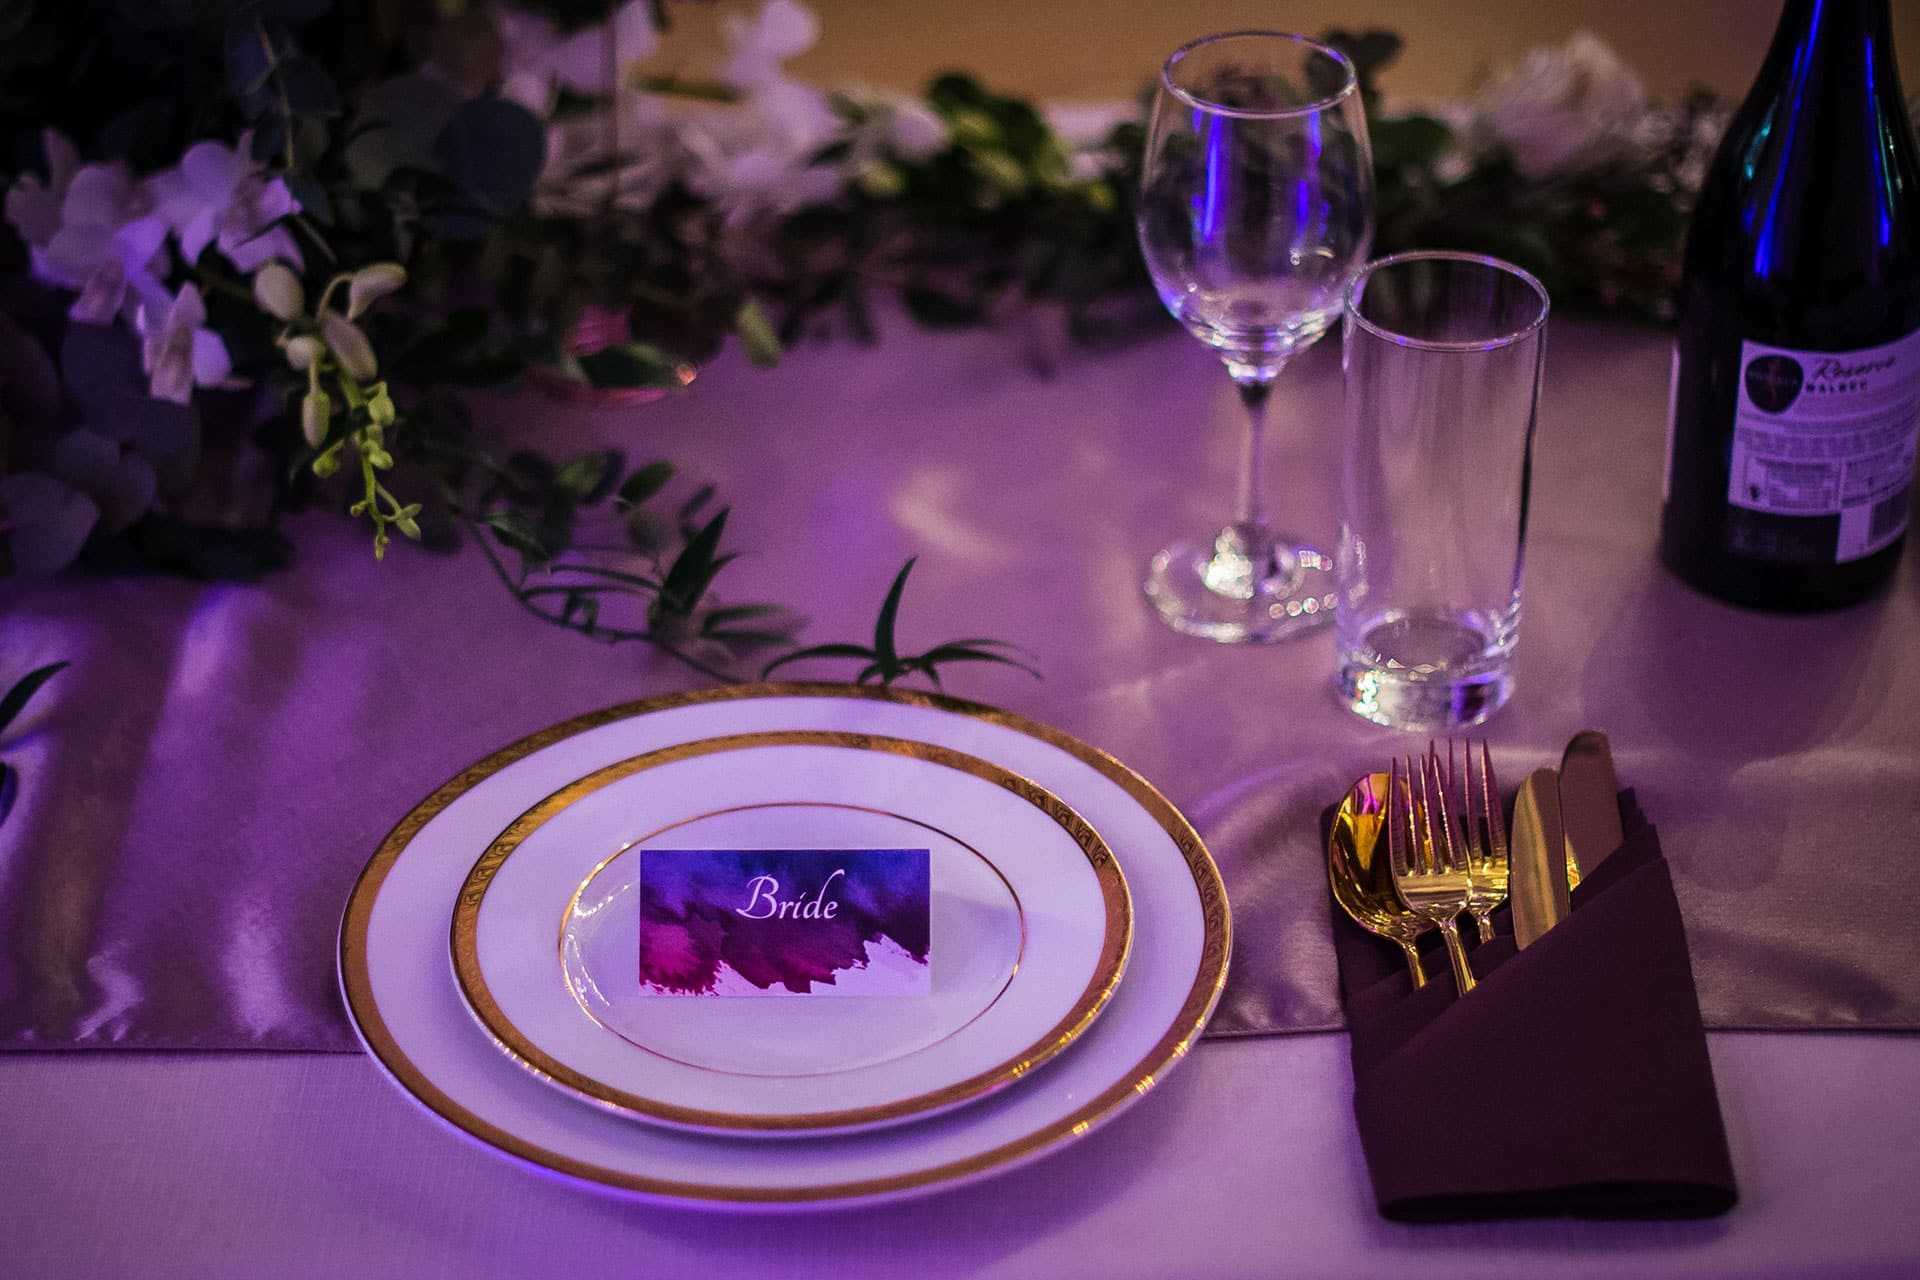 Table setting in purple, gold and champagne